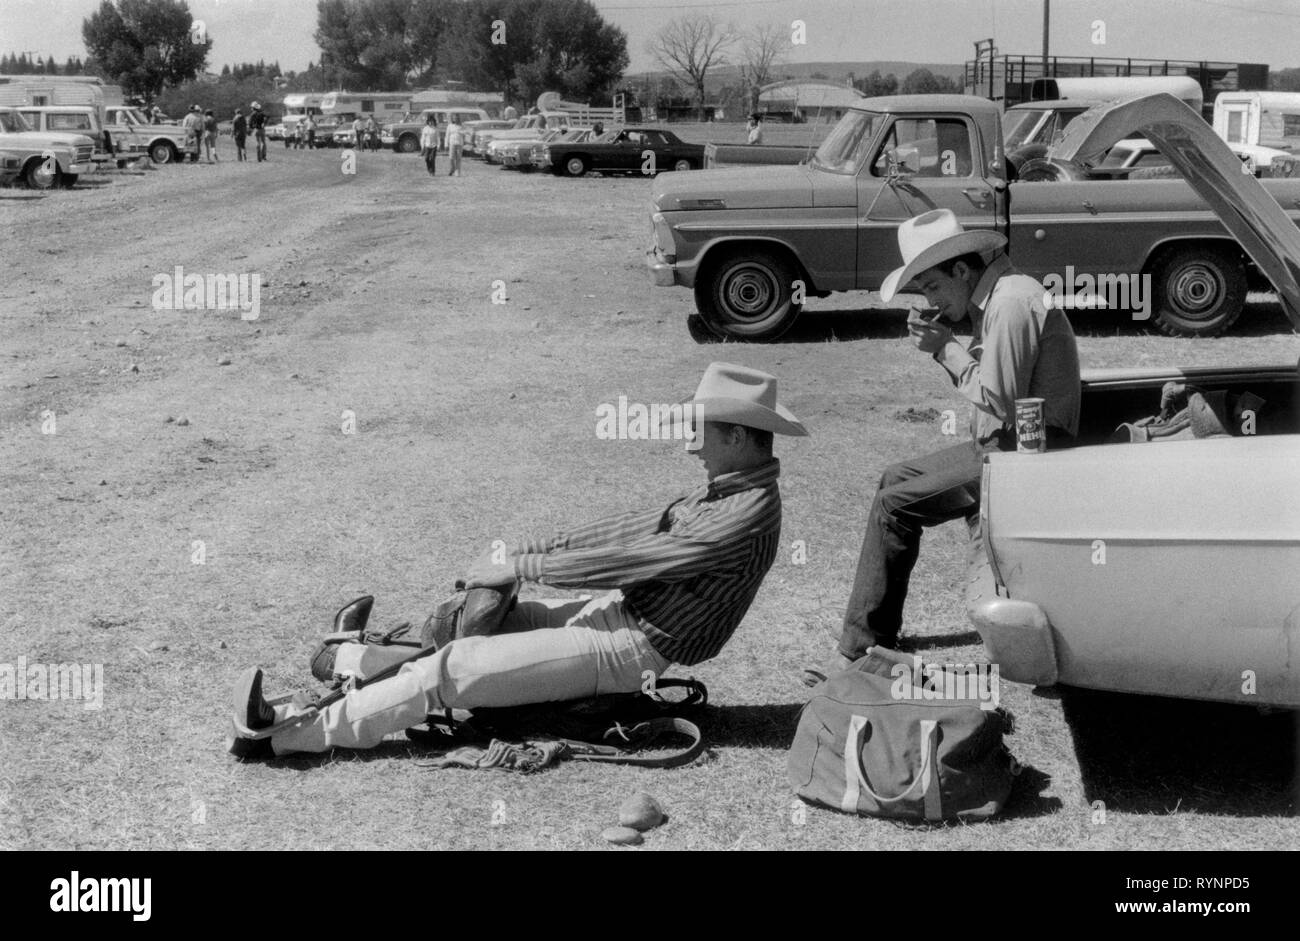 Evanston Wyoming USA 1970s. Two young cowboys, preparing for a rodeo in the car park. One sits on a horse saddle that is on the ground and pretends he is on a horse while another lights a cigarette sitting in the trunk of their automobile. 1971 70s USA US HOMER SYKES - Stock Image